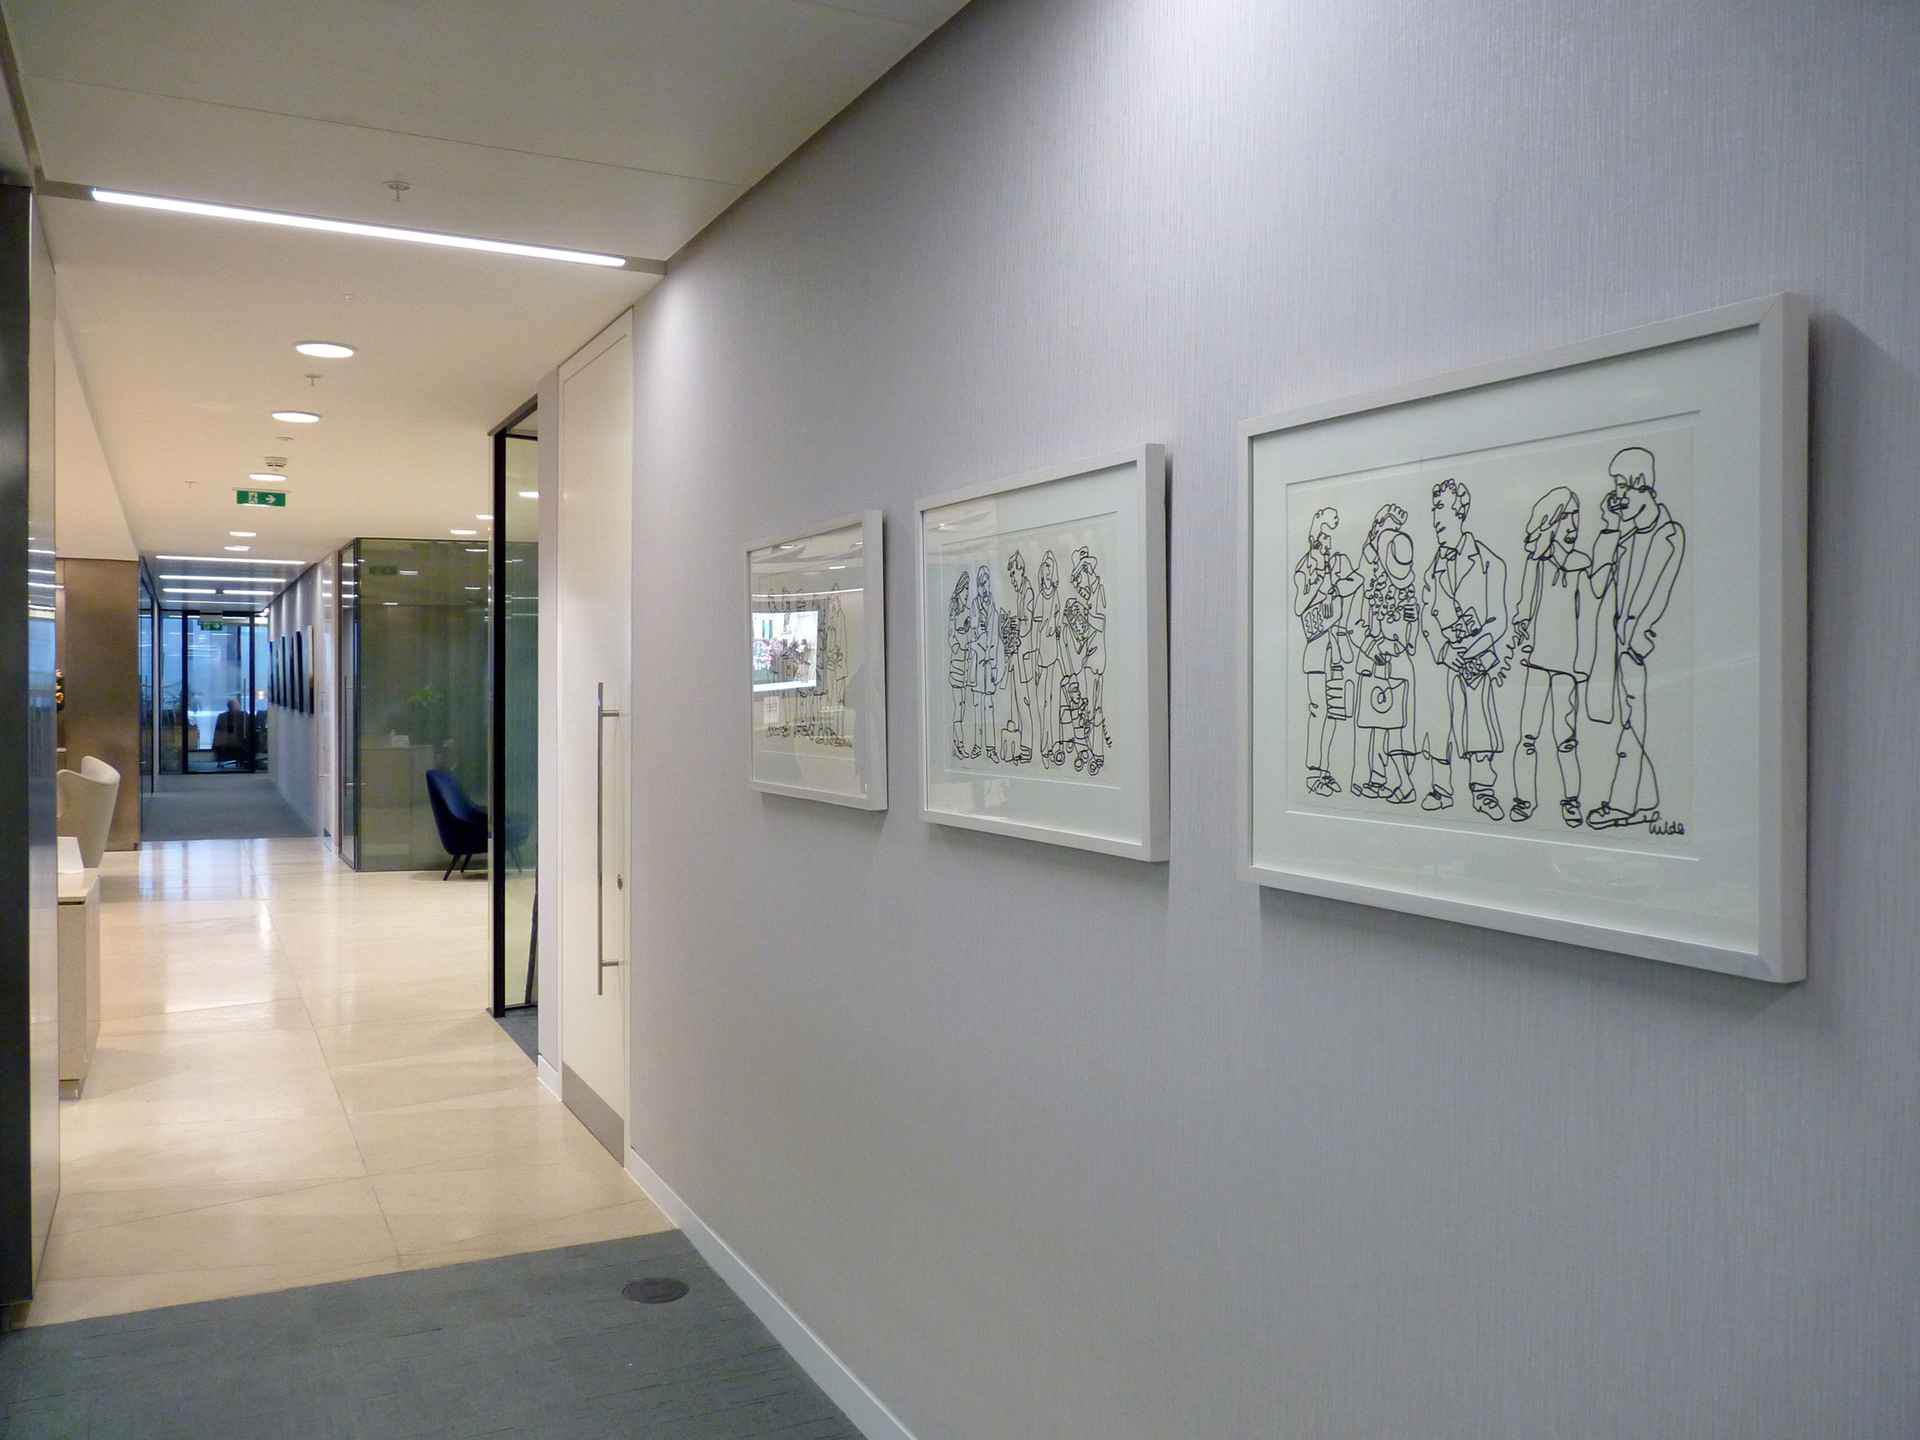 Continuous line drawings by EY (Ernst & Young)